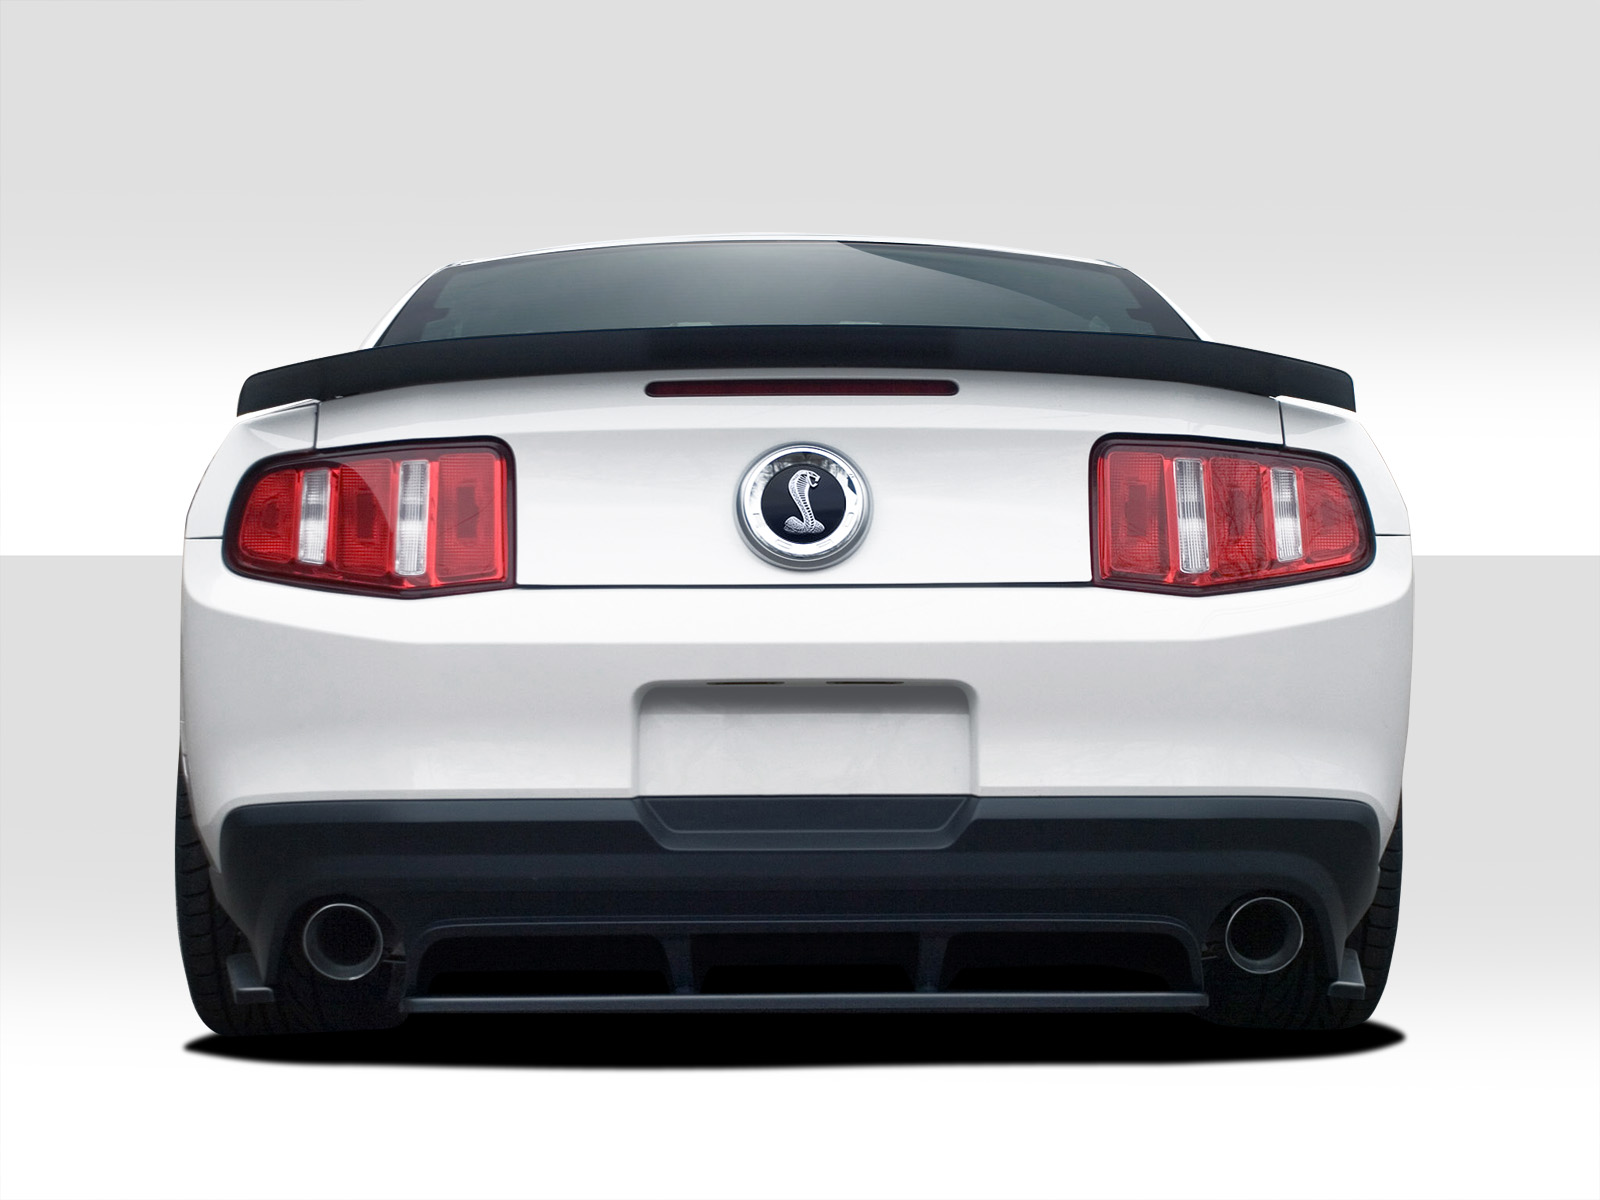 welcome to extreme dimensions    item group    2010-2012 ford mustang duraflex r500 body kit